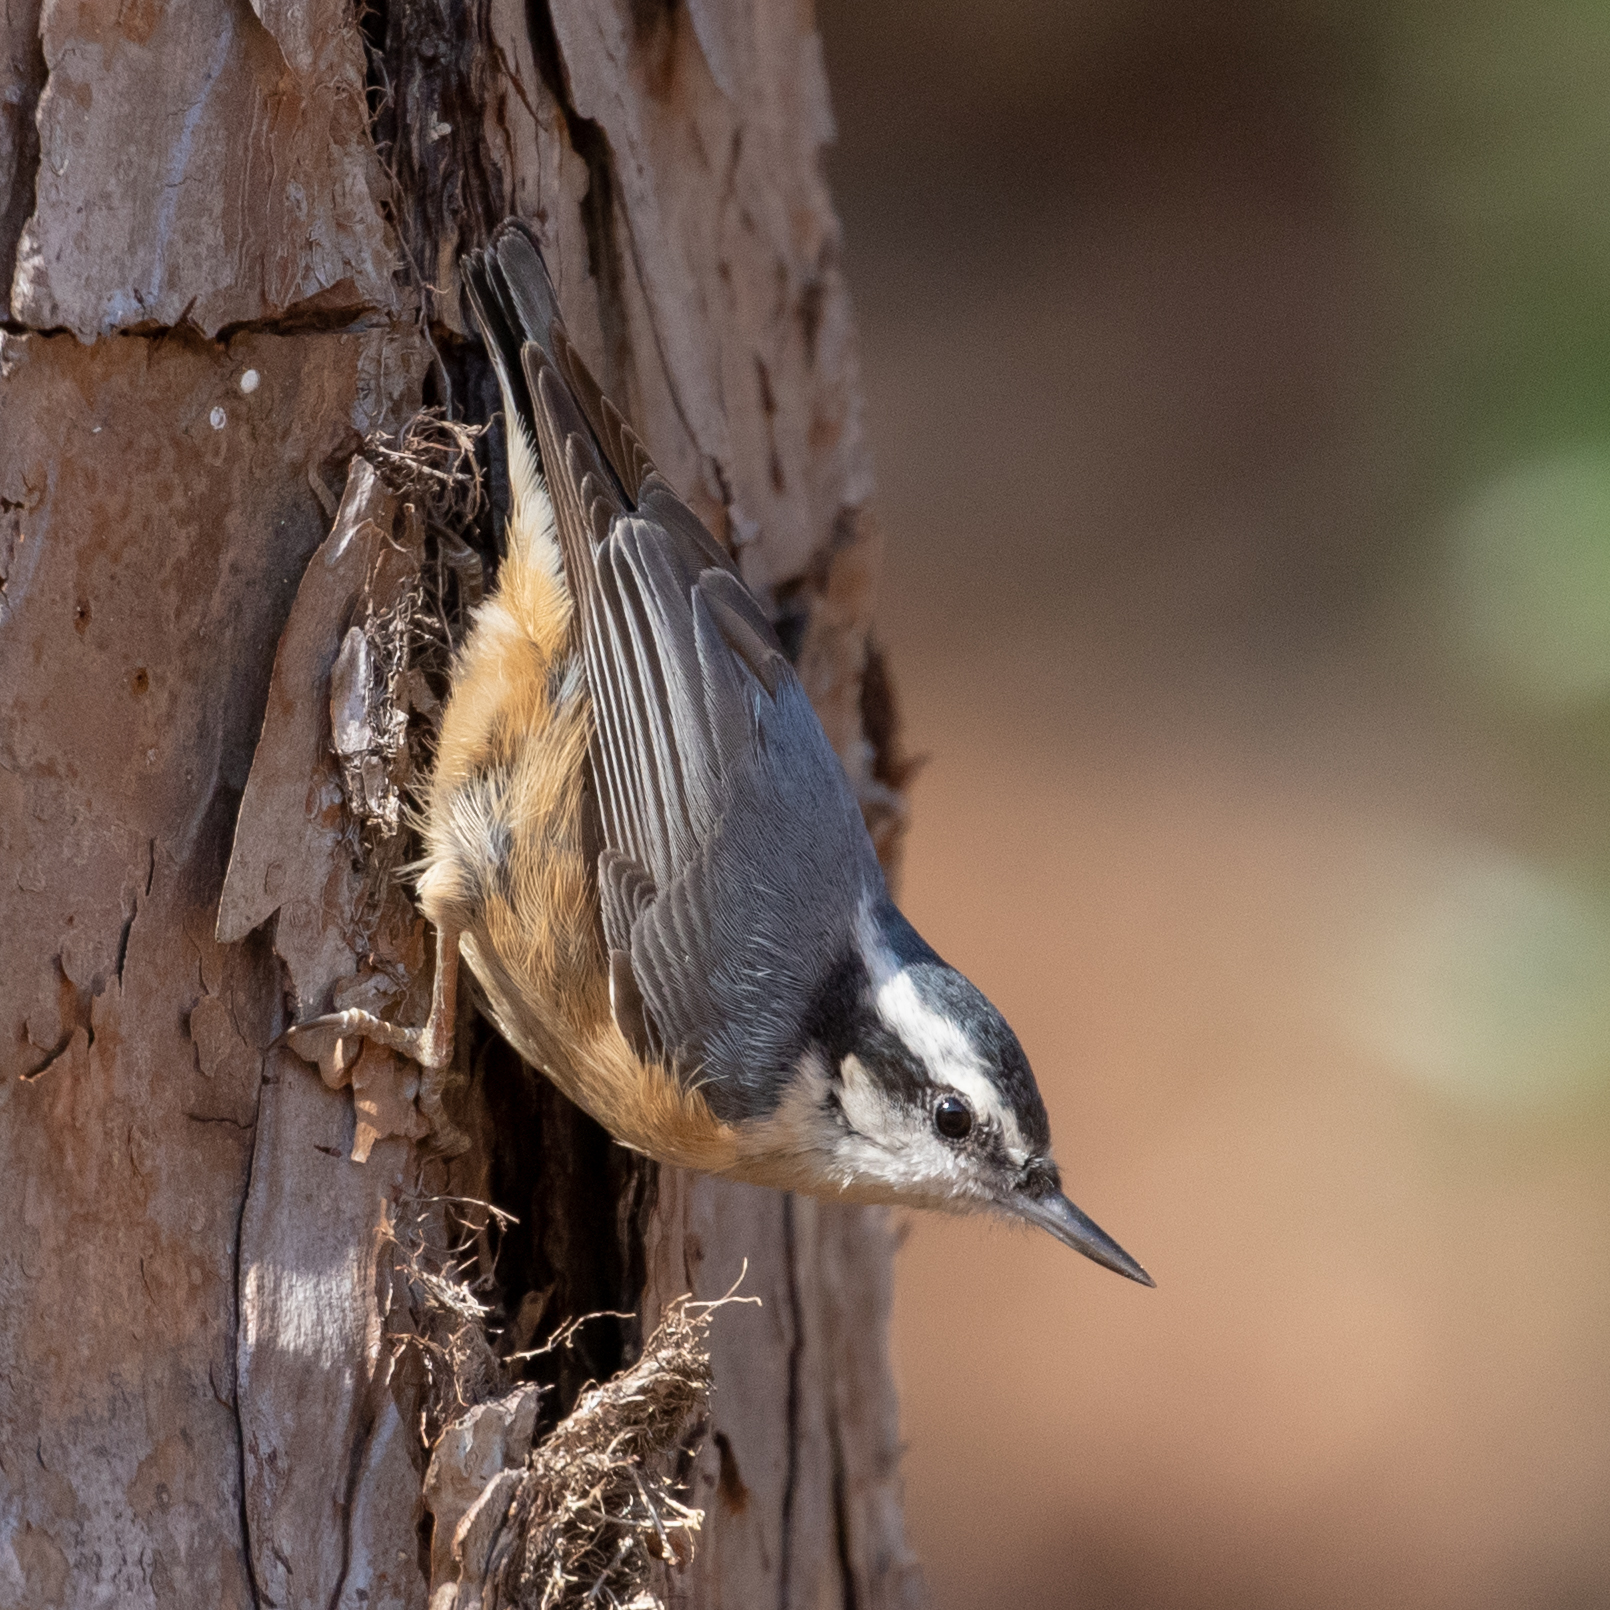 Red-breasted Nuthatch, male